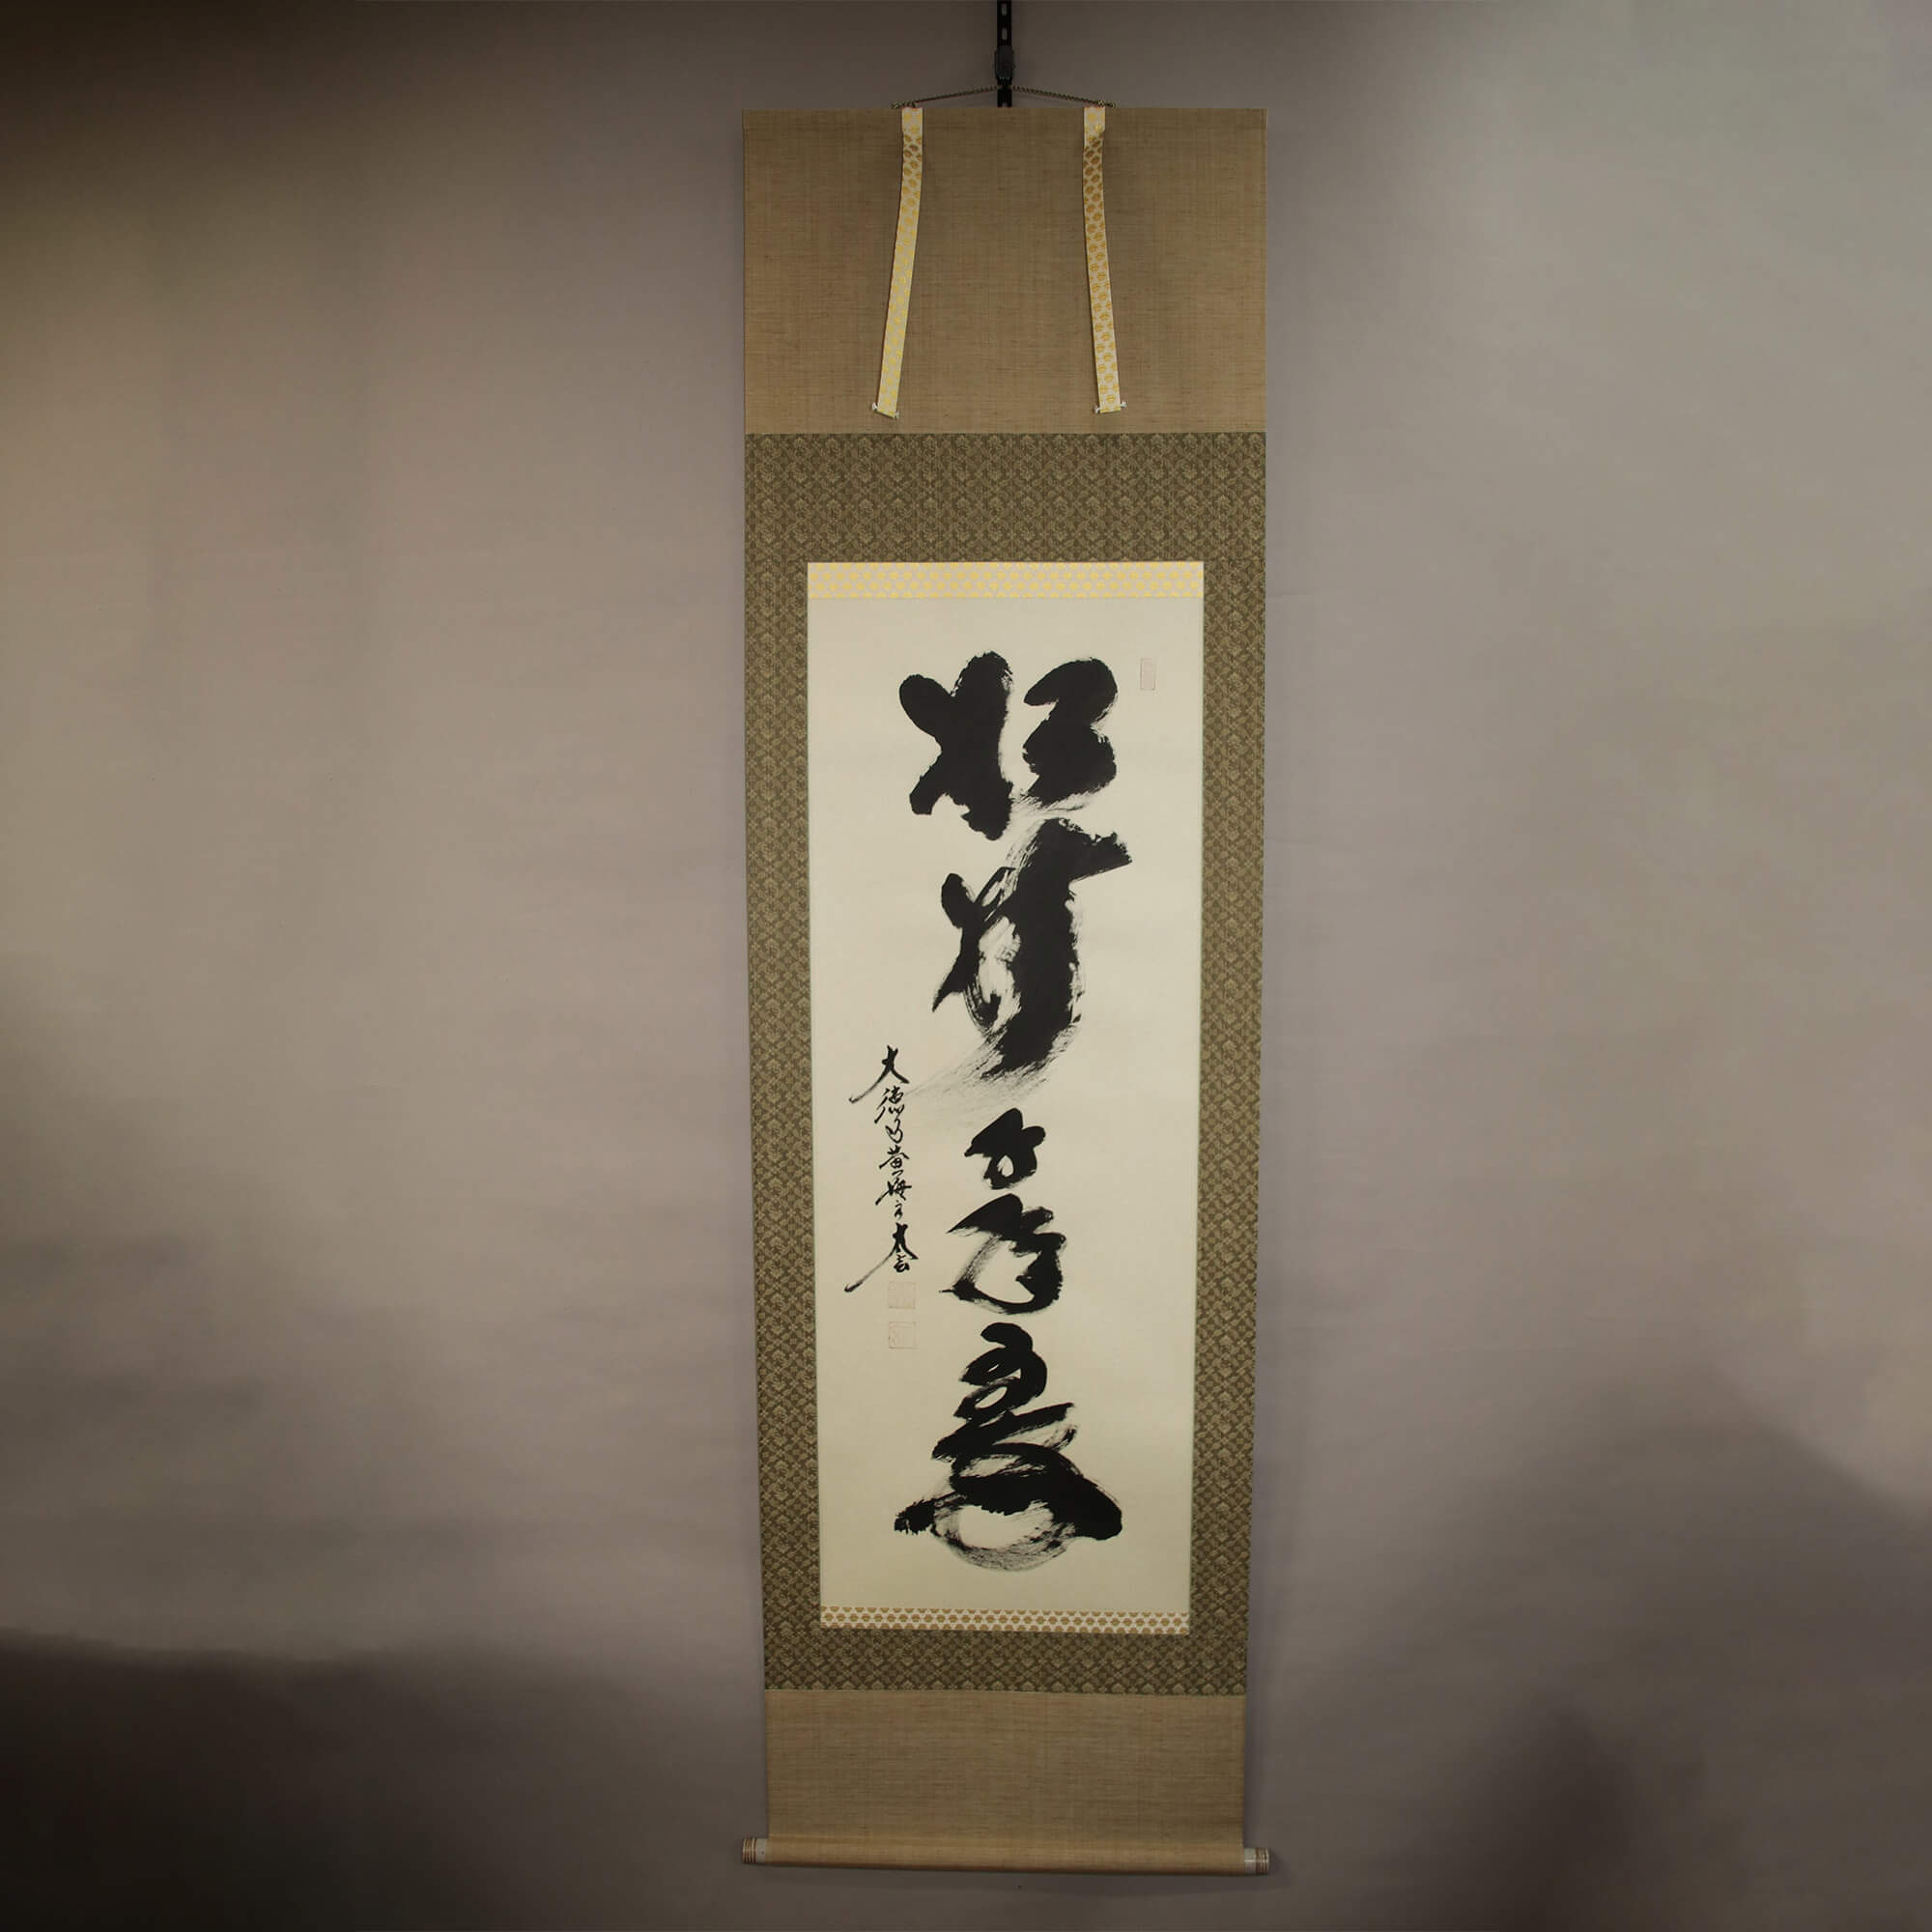 Calligraphy: Pine Tree in 1000-Year Green / Kobayashi Taigen